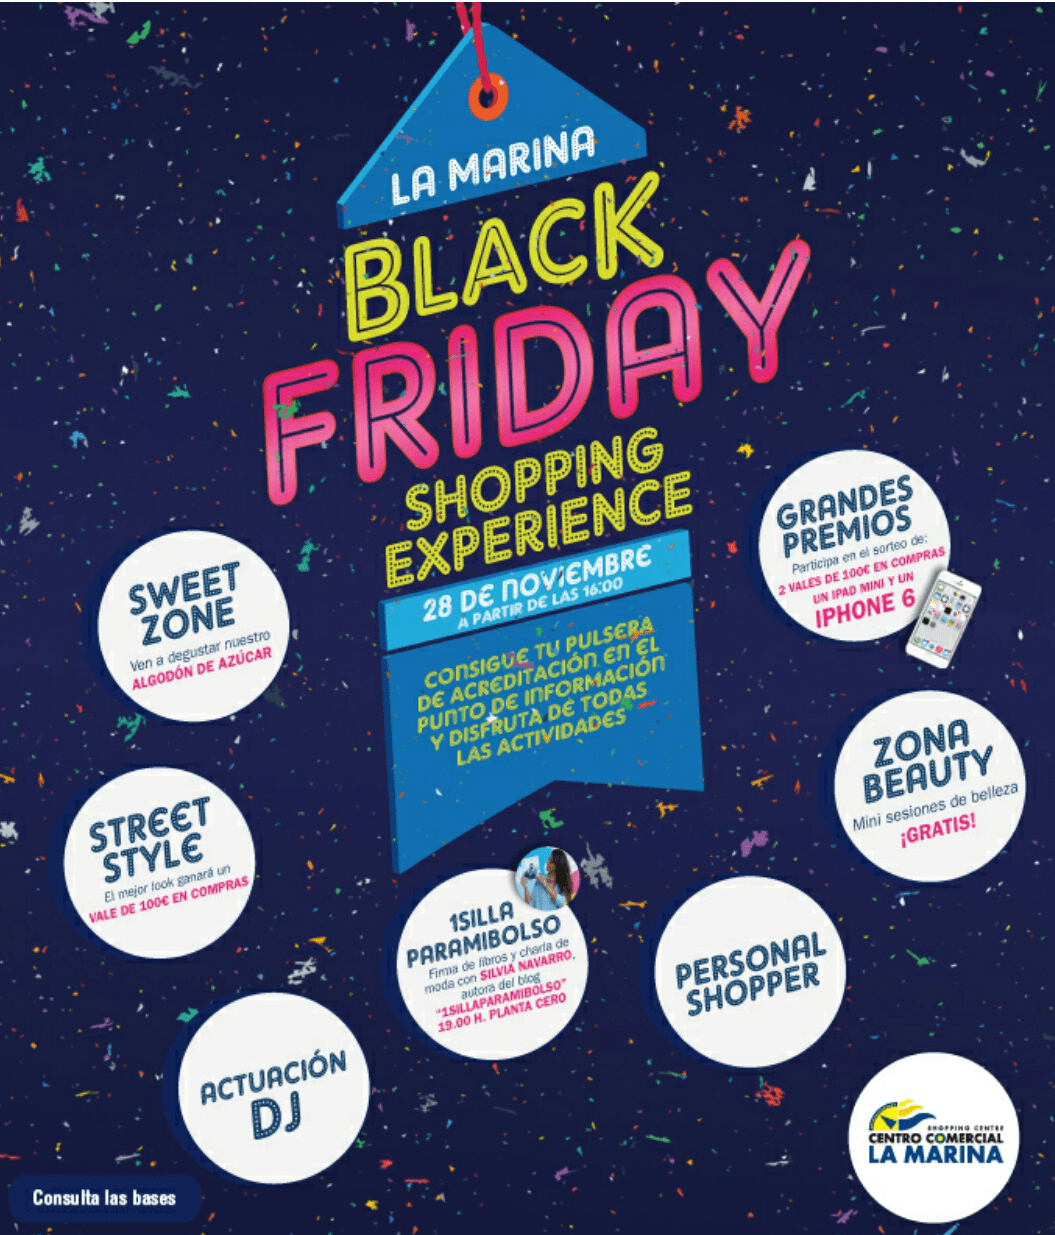 Black Friday Germany Este Viernes En El Cc La Marina Black Friday Taxis